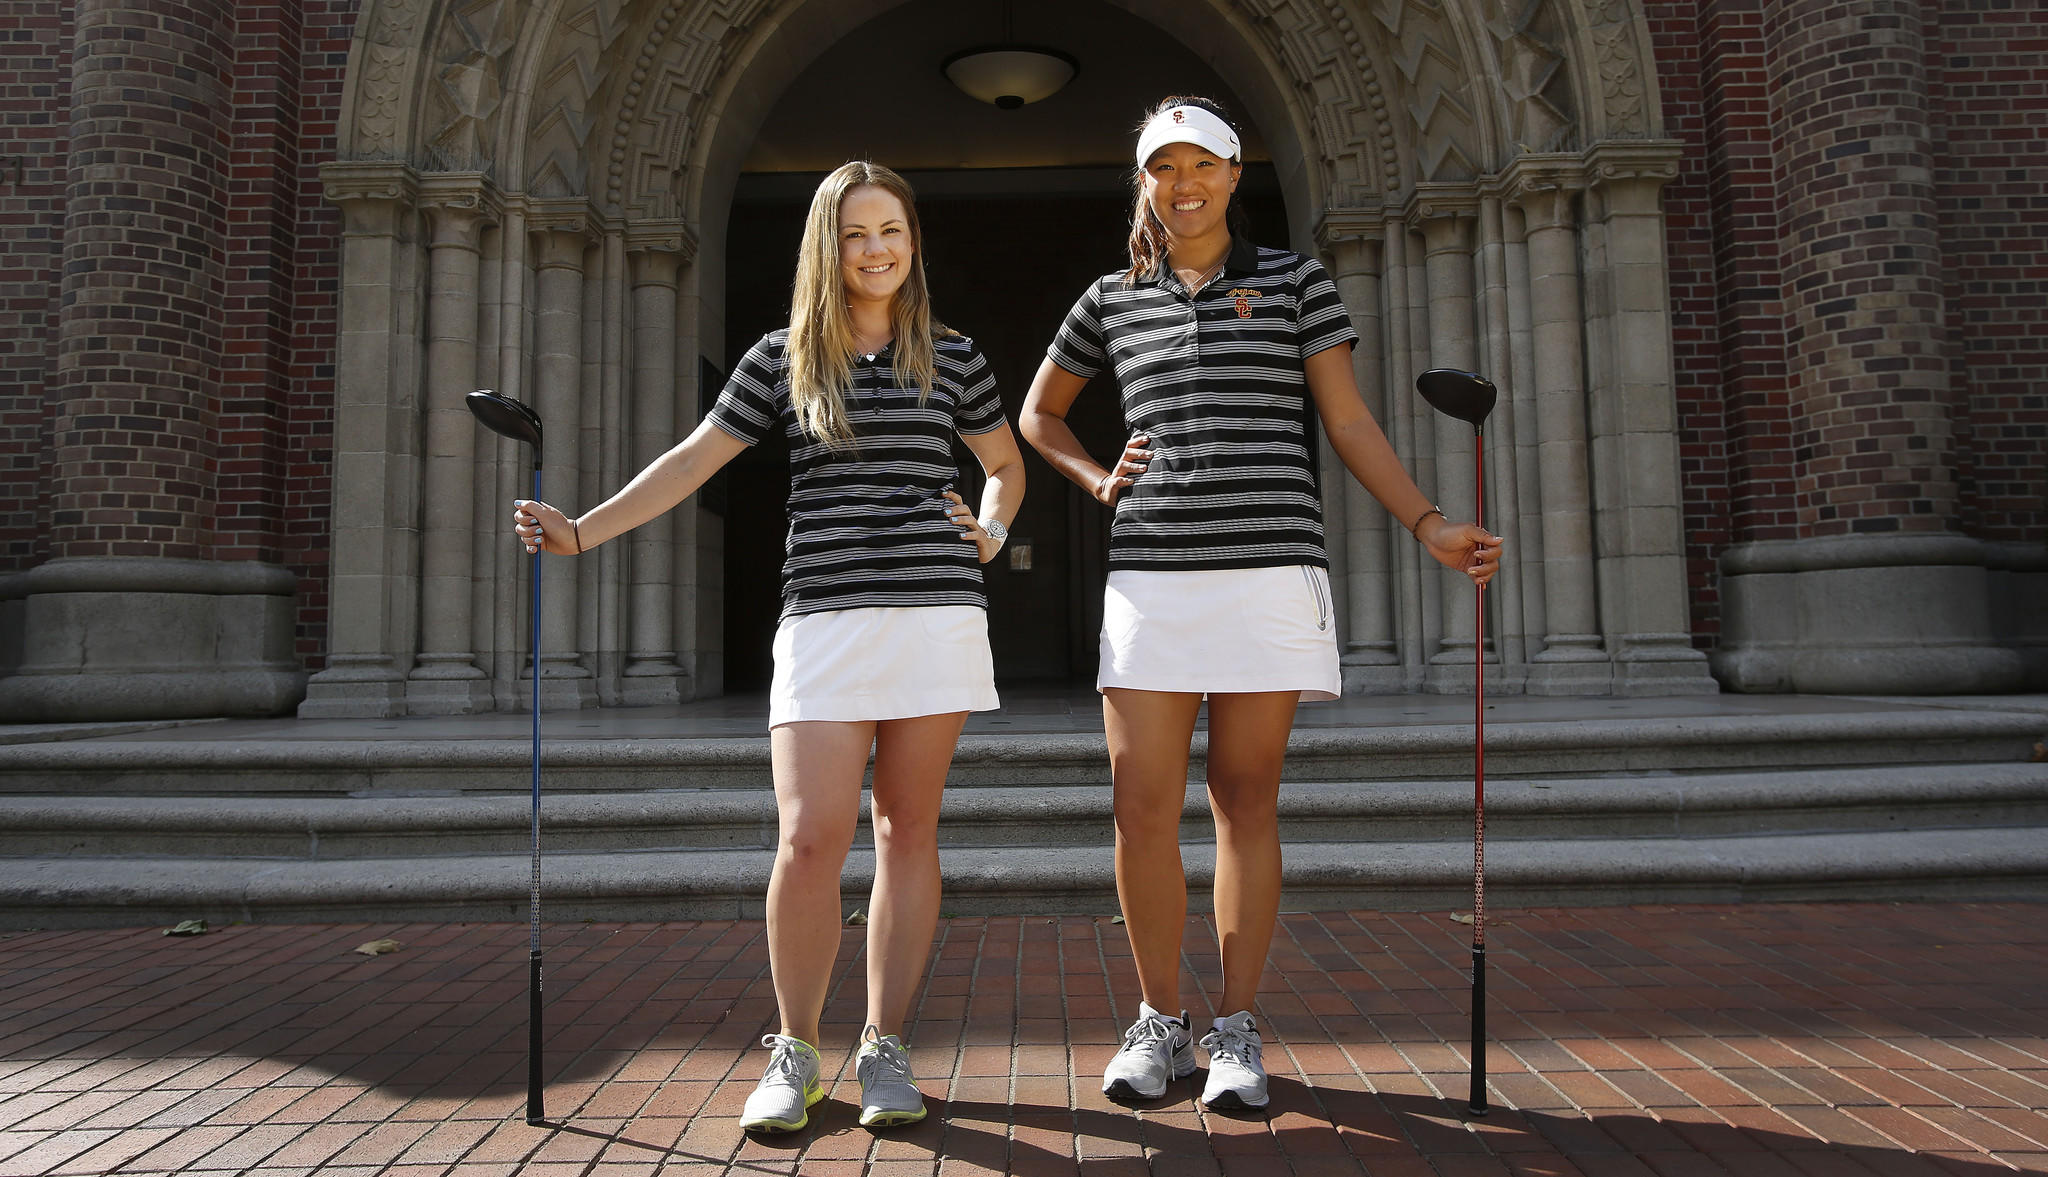 USC women's golfers Rachel Morris, left, and Annie Park played leading roles in lifting the Trojans to the 2013 NCAA championship. They are also excel academically.